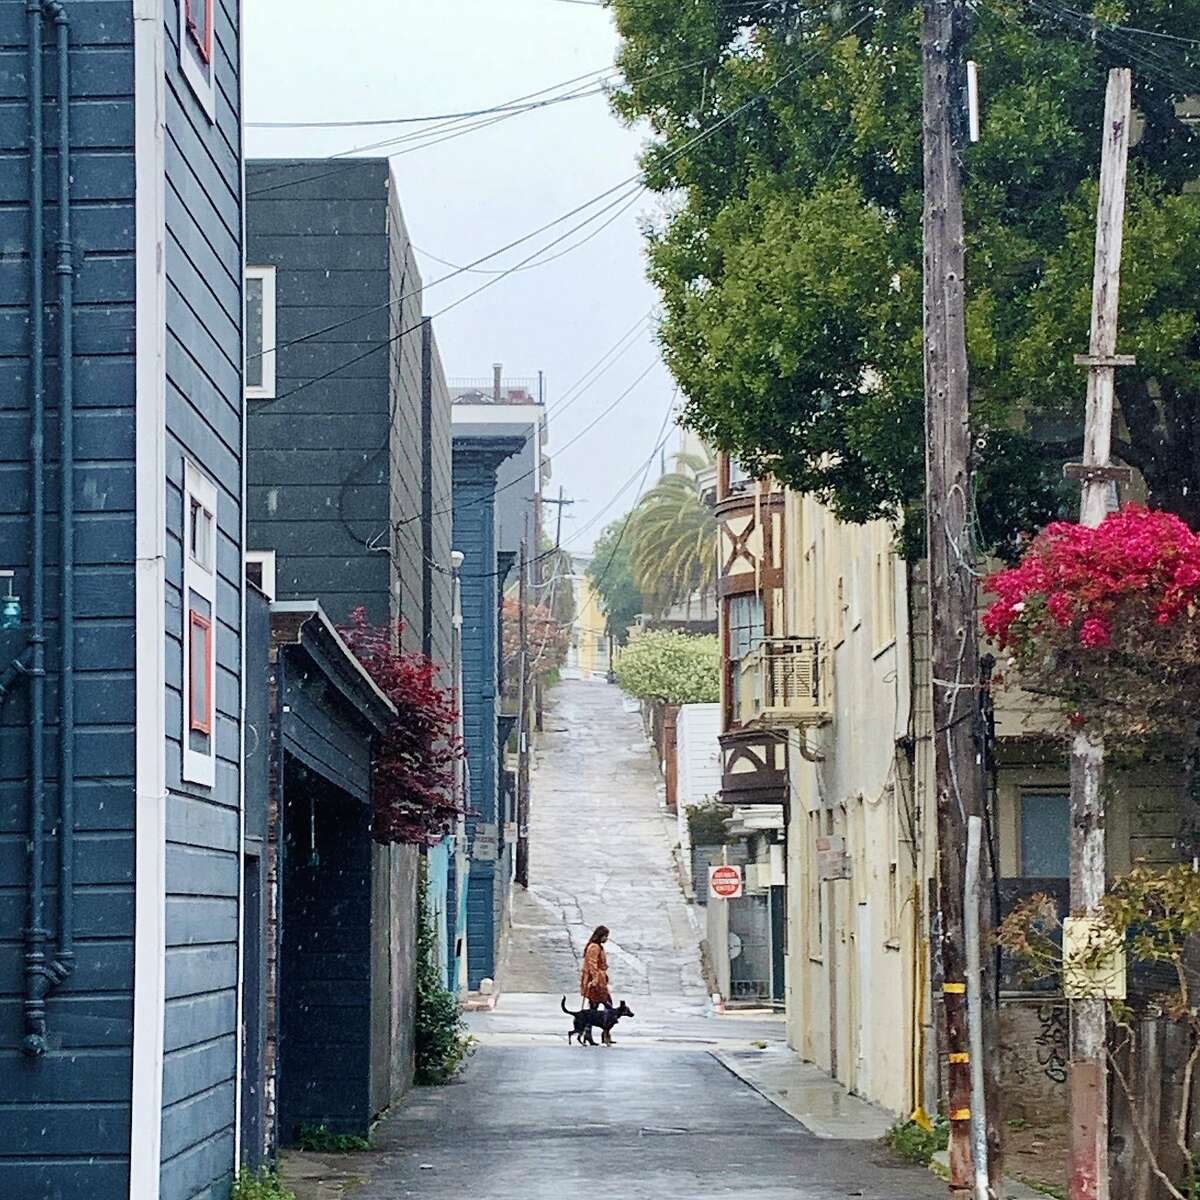 A person and dog walk in light rain in San Francisco's Mission District on Sunday.